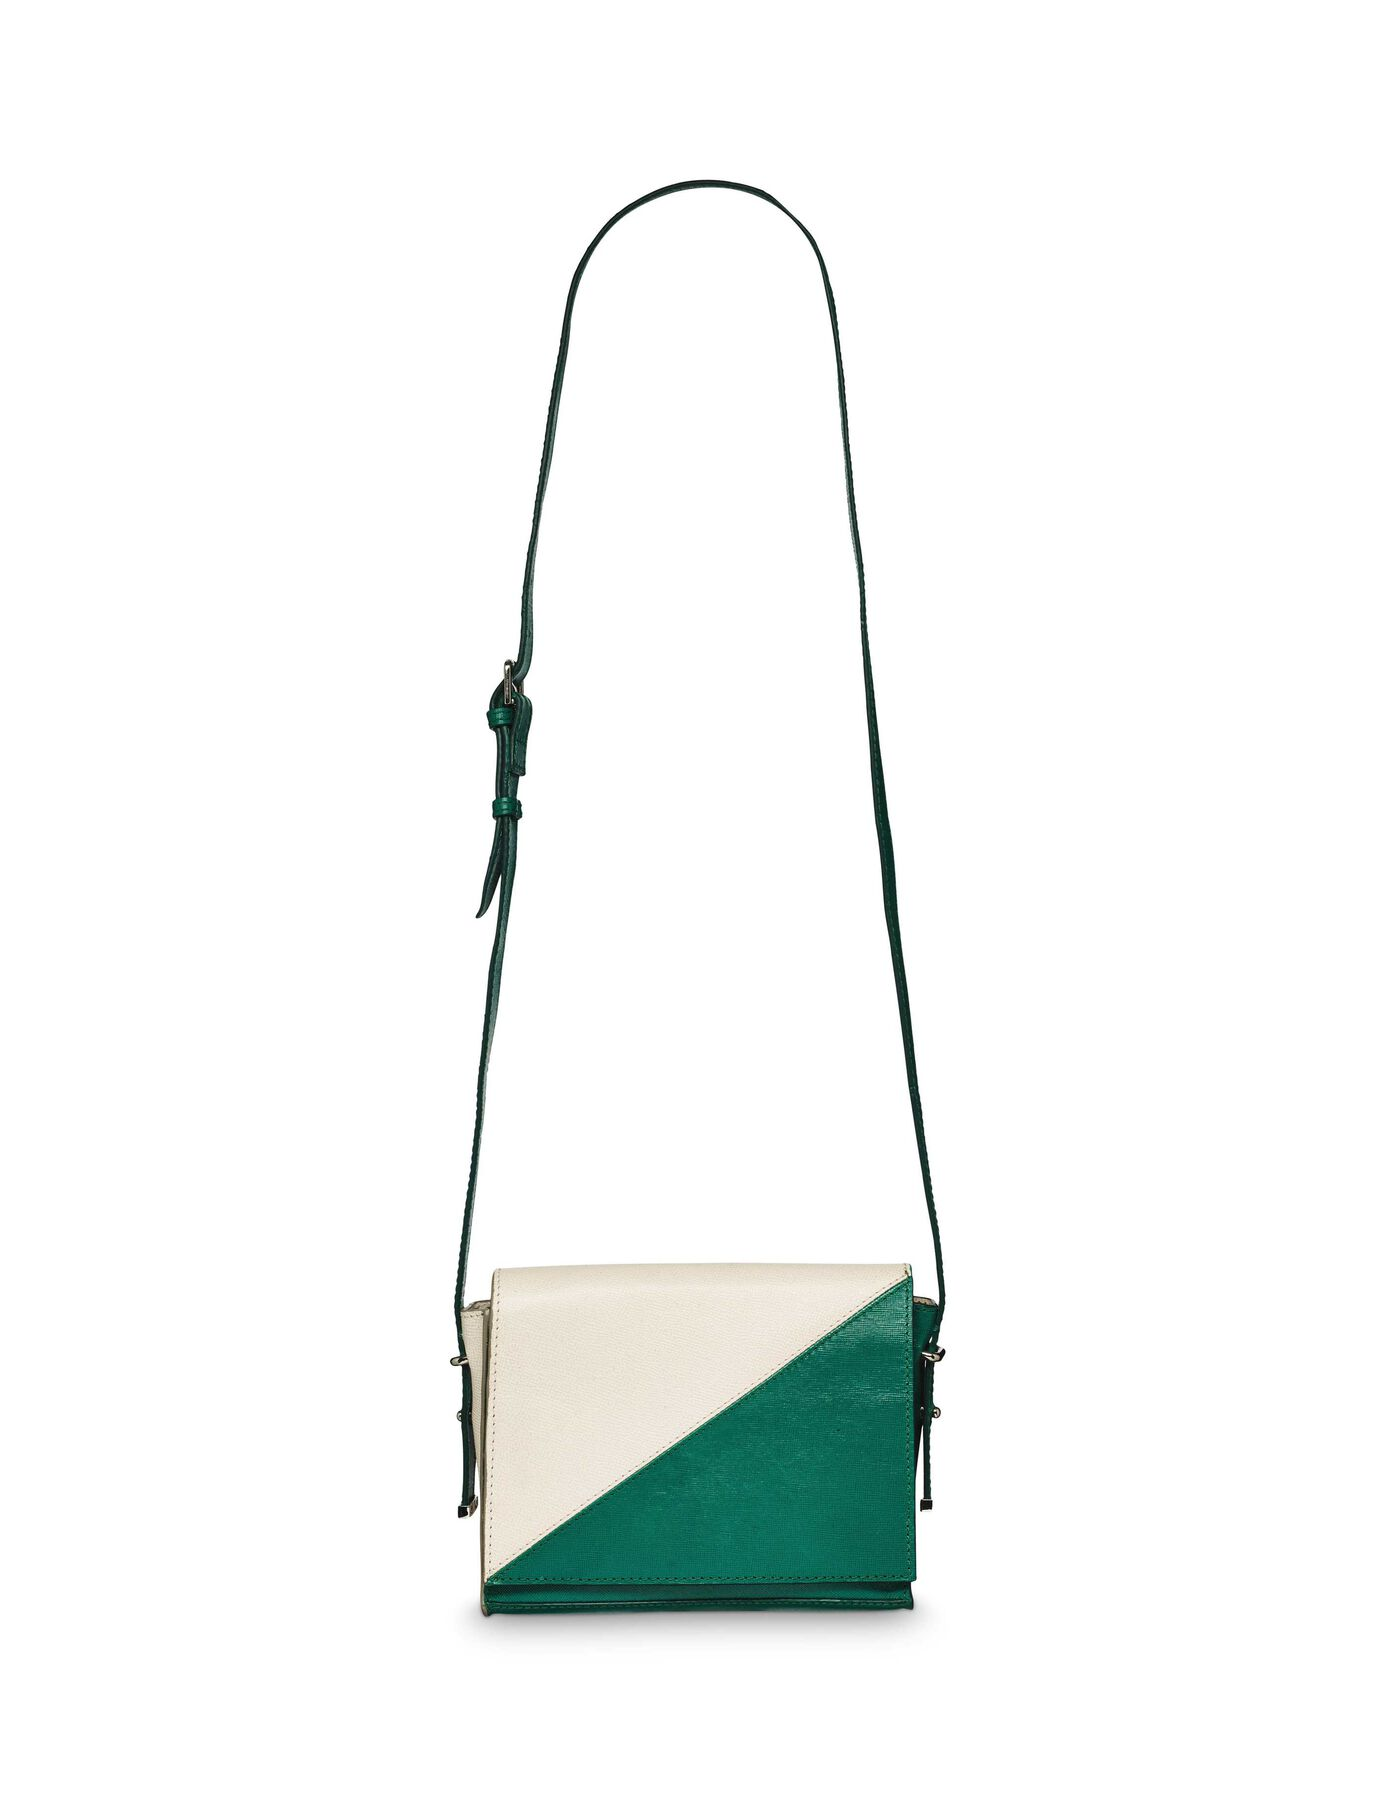 Lagginhorn bag